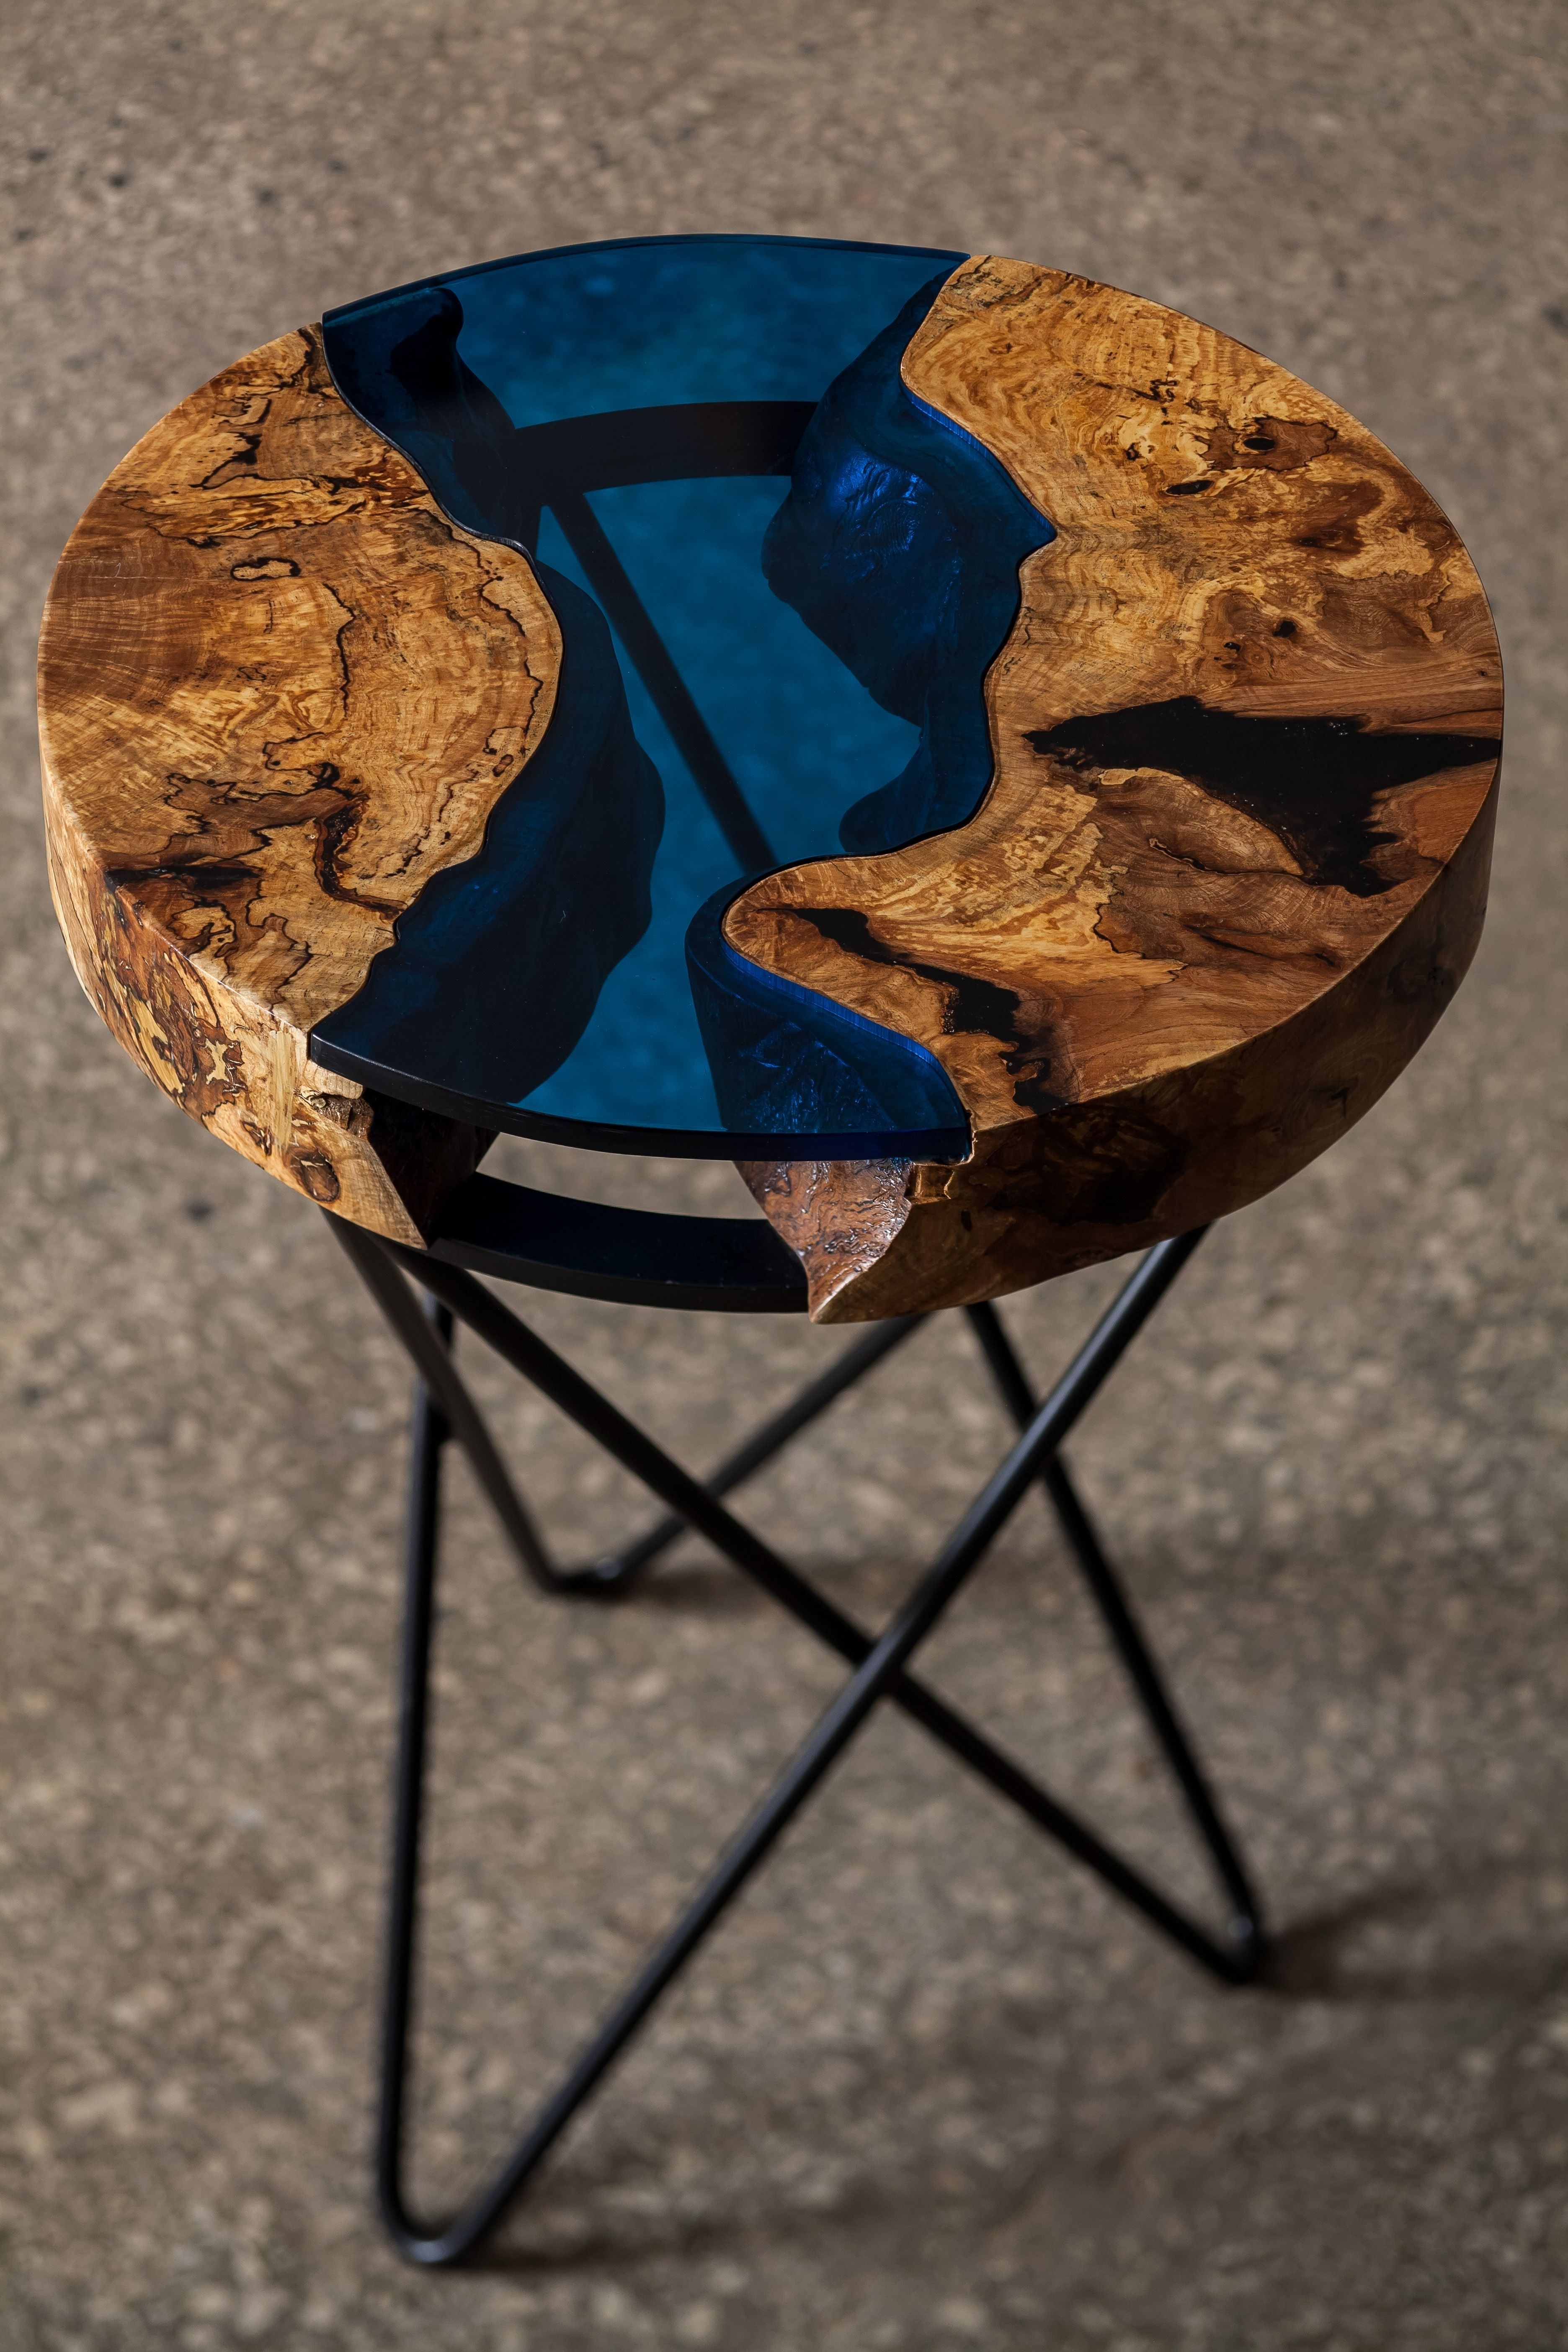 Aqua Side Table, Made From Ash Tree And Blue Acrylic, Cracks Filled Pertaining To Most Recently Released Stately Acrylic Coffee Tables (View 3 of 20)